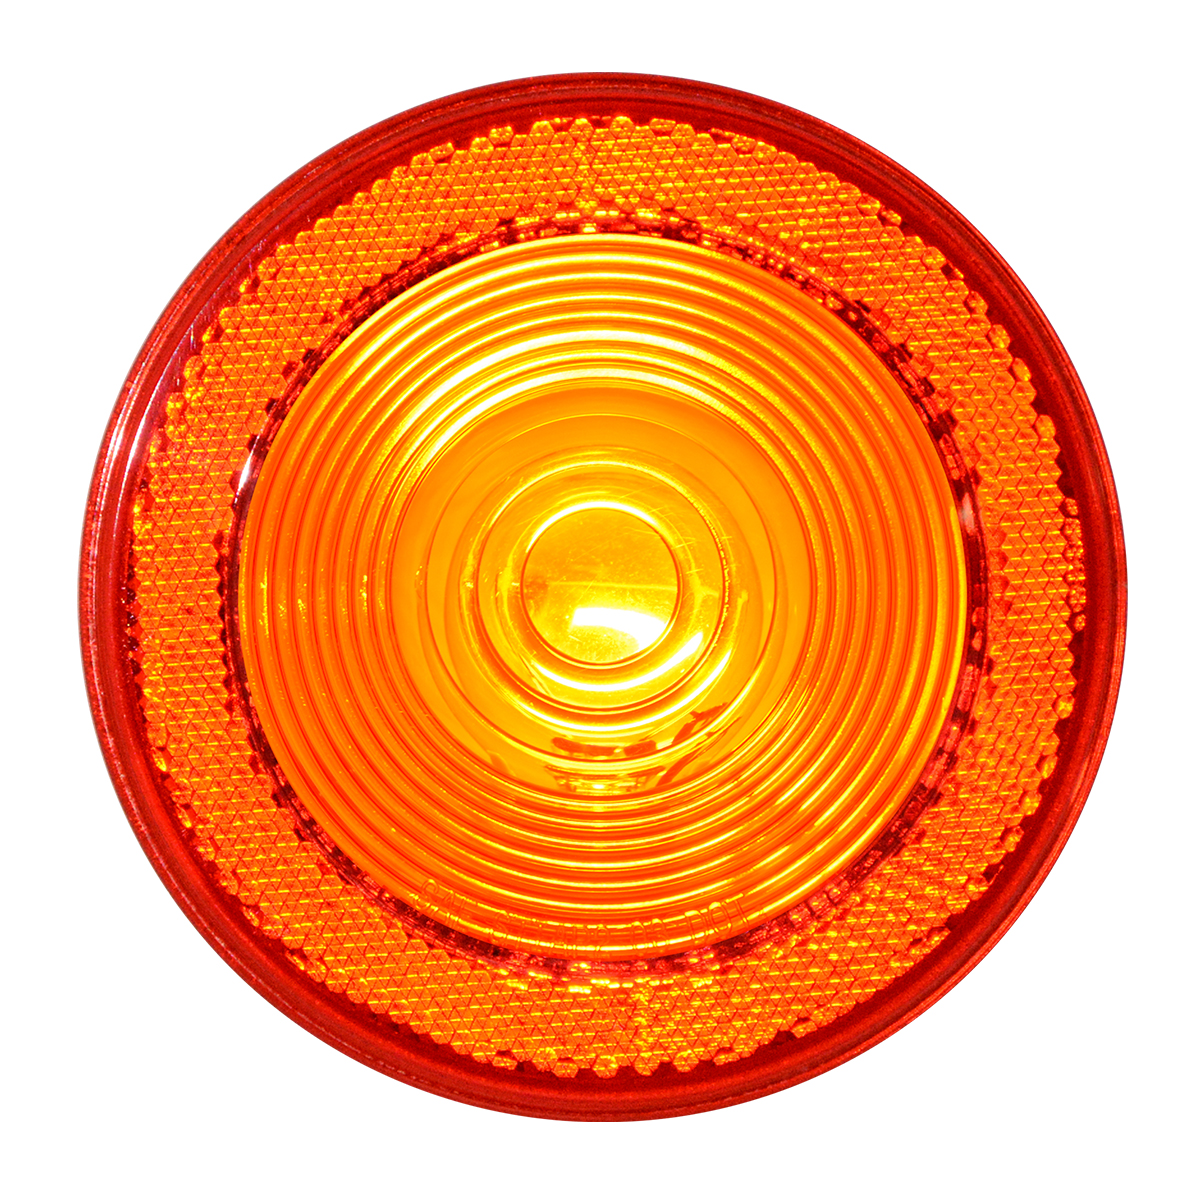 "#82761 4"" Light with Reflector Lens - Light Only"